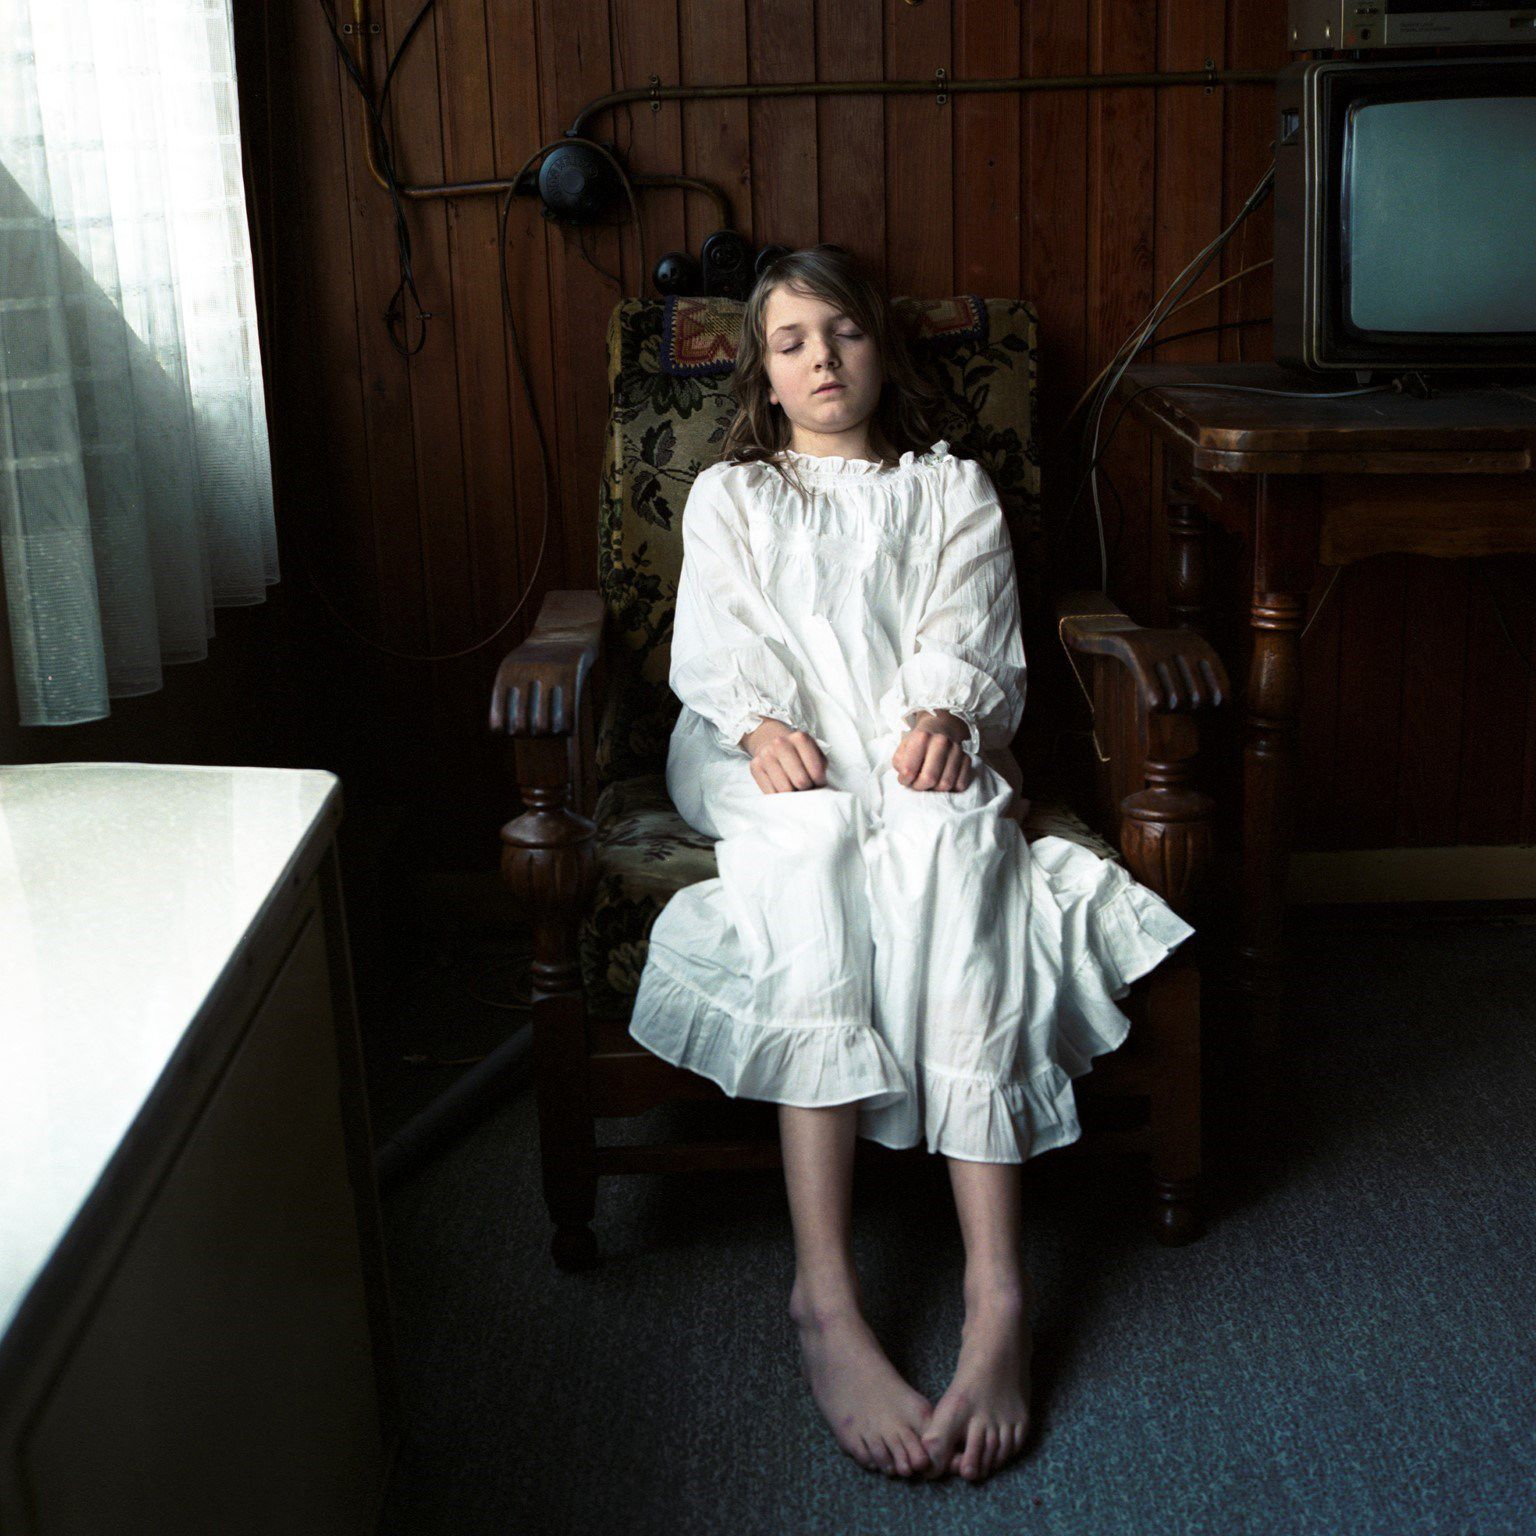 Untitled #309 (from Pool of Tears), 2008, 16 x 16 inch Chromogenic Print, Edition of 10